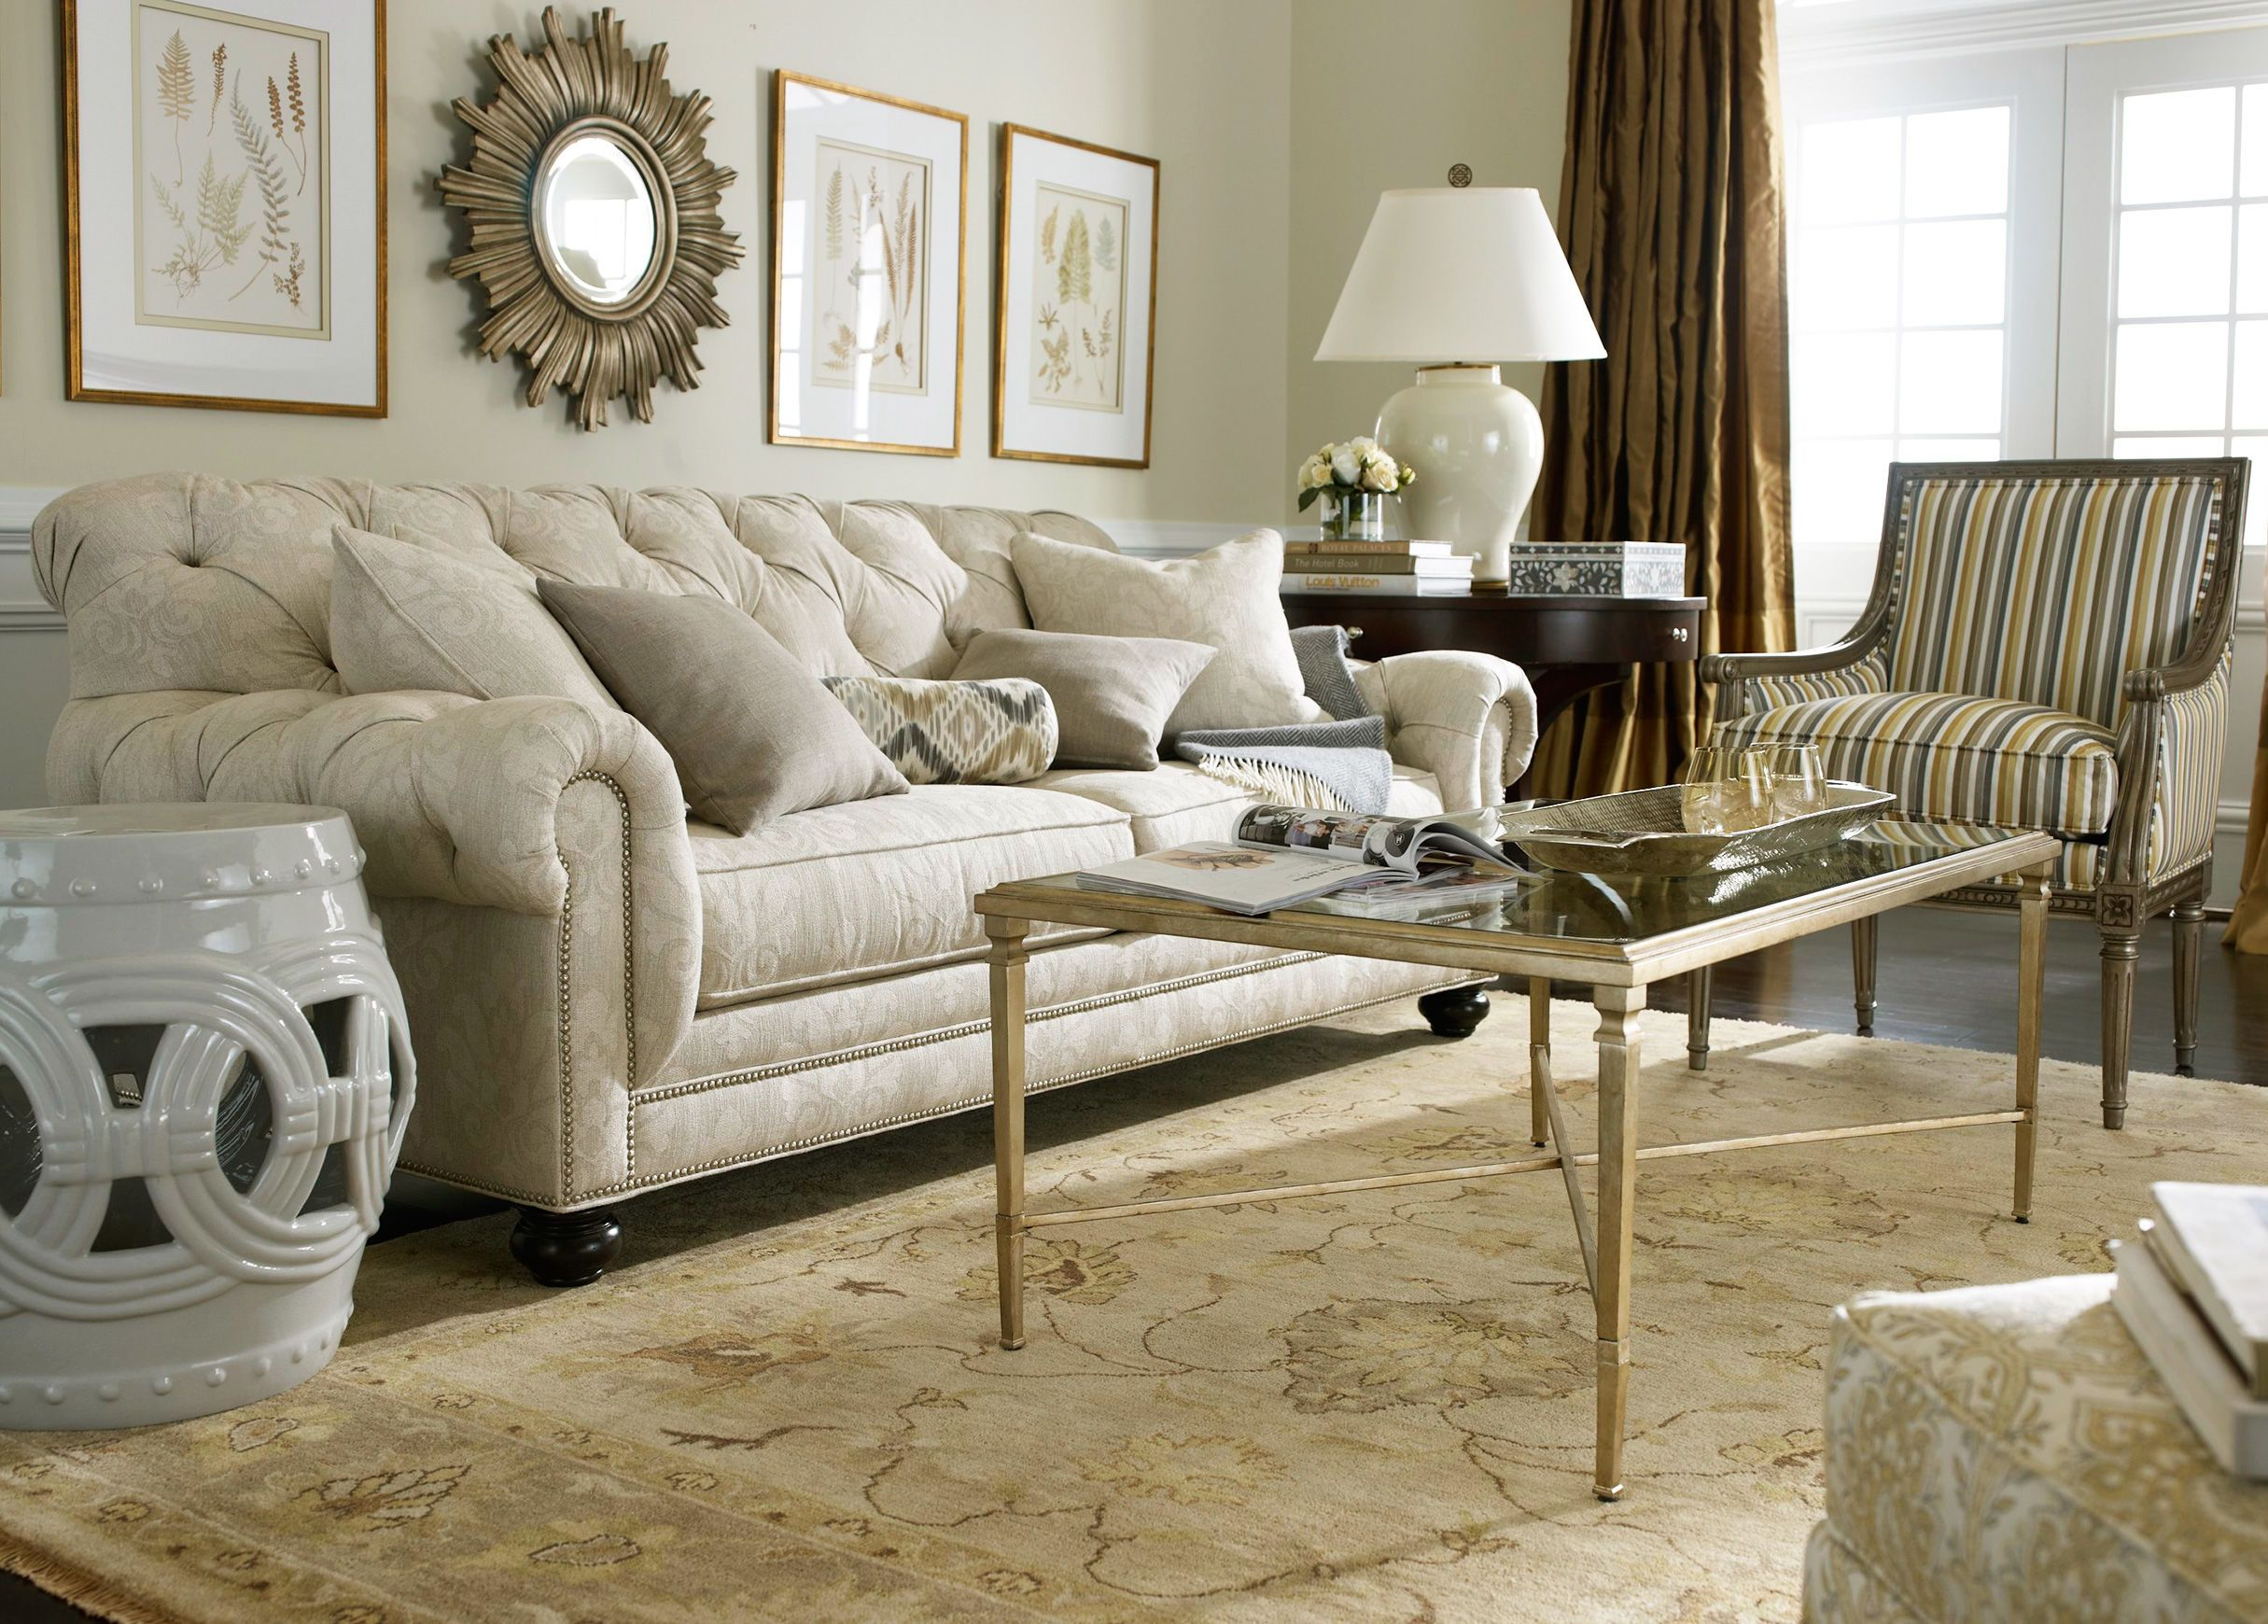 chadwick sofa crate and barrel couch bed ethan allen sofas living room home decor